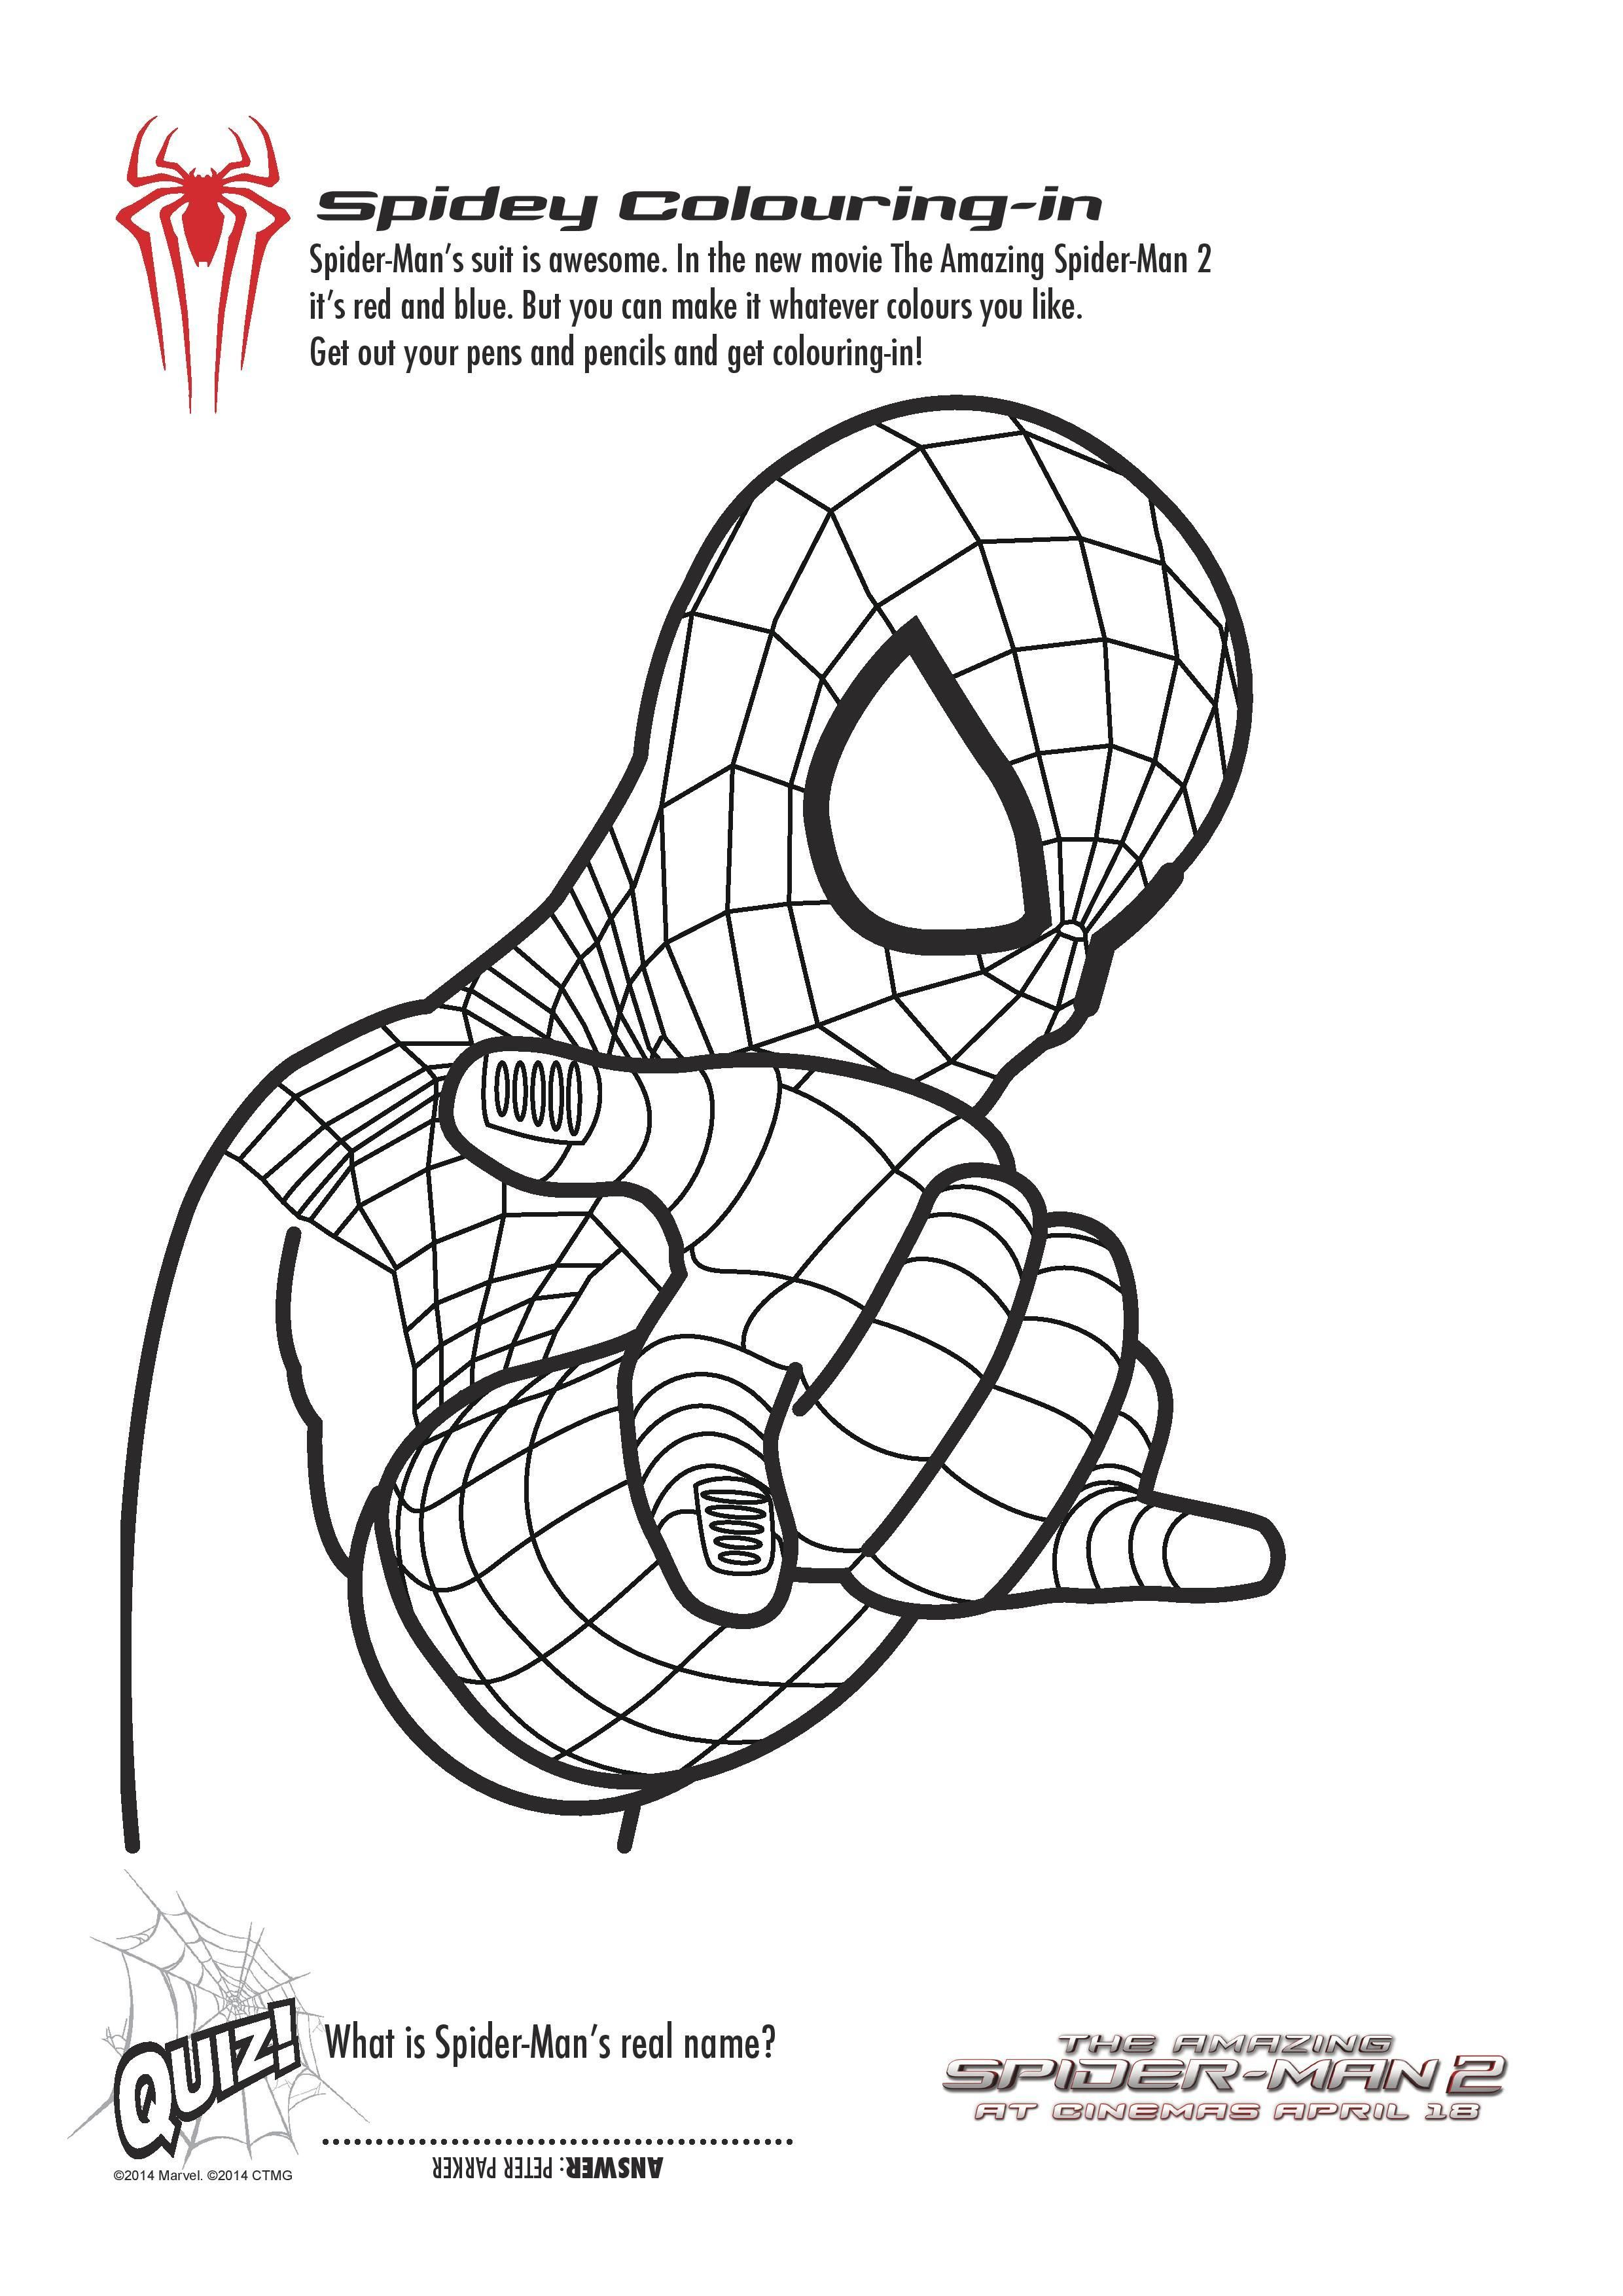 The Amazing Spider Man Coloring Pages To Print In 2020 Spiderman Coloring Spiderman Printables Avengers Coloring Pages